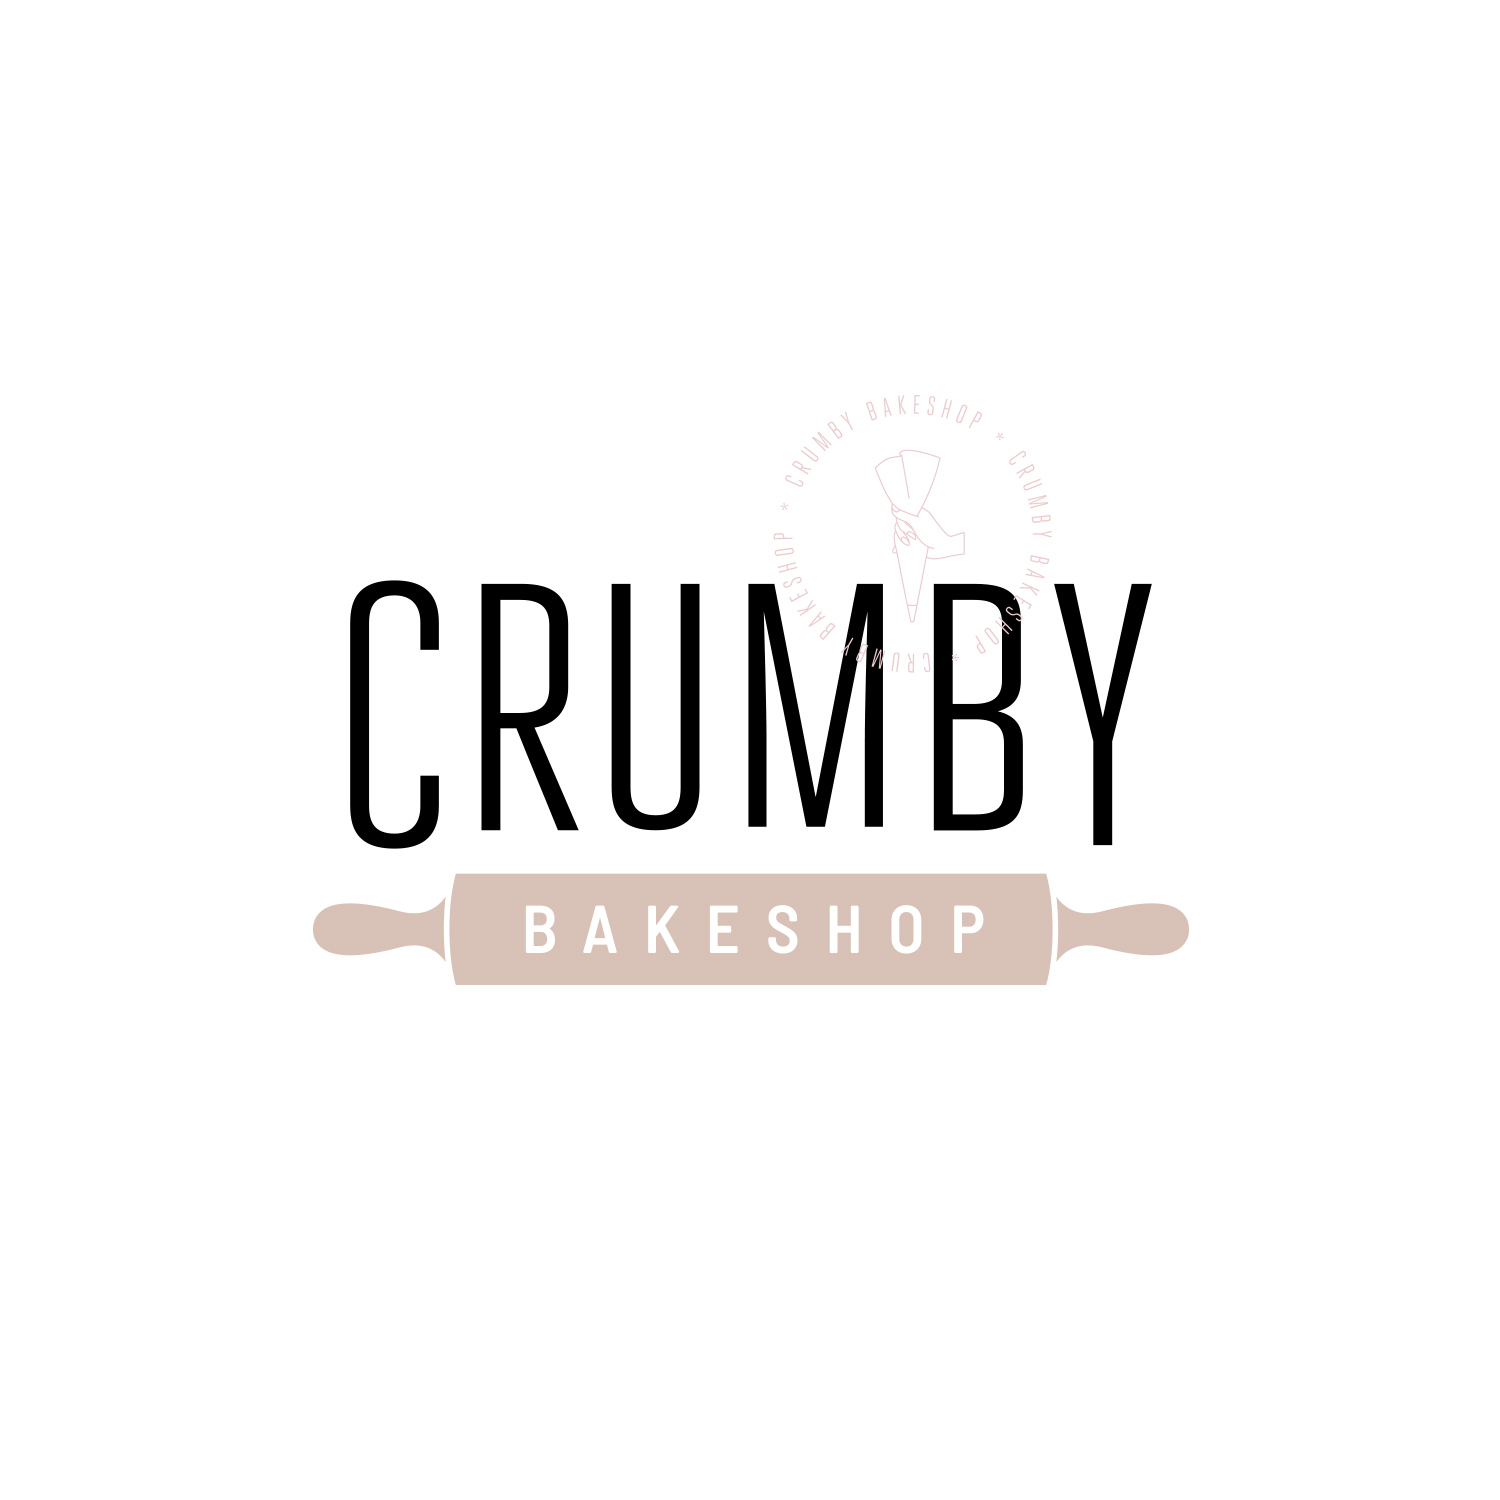 Combination Mark Logo for Crumby Bakeshop by Akula Kreative